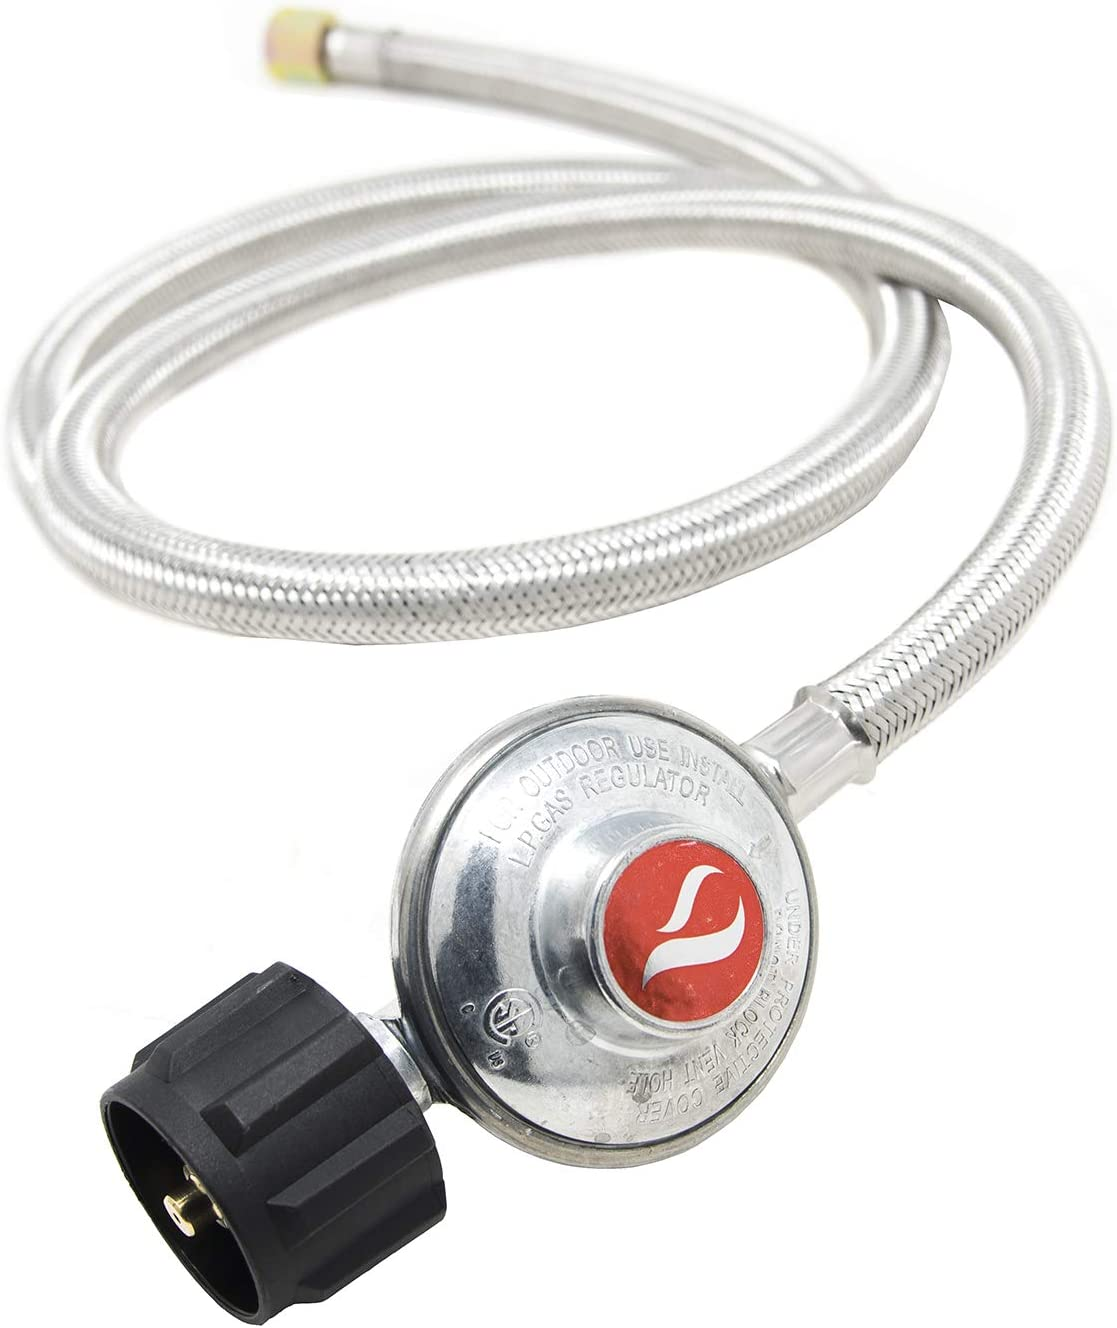 GasOne 2107-05 for Most LP Gas Grill, Heater Propane Regulator 5 Feet Steel Hose with